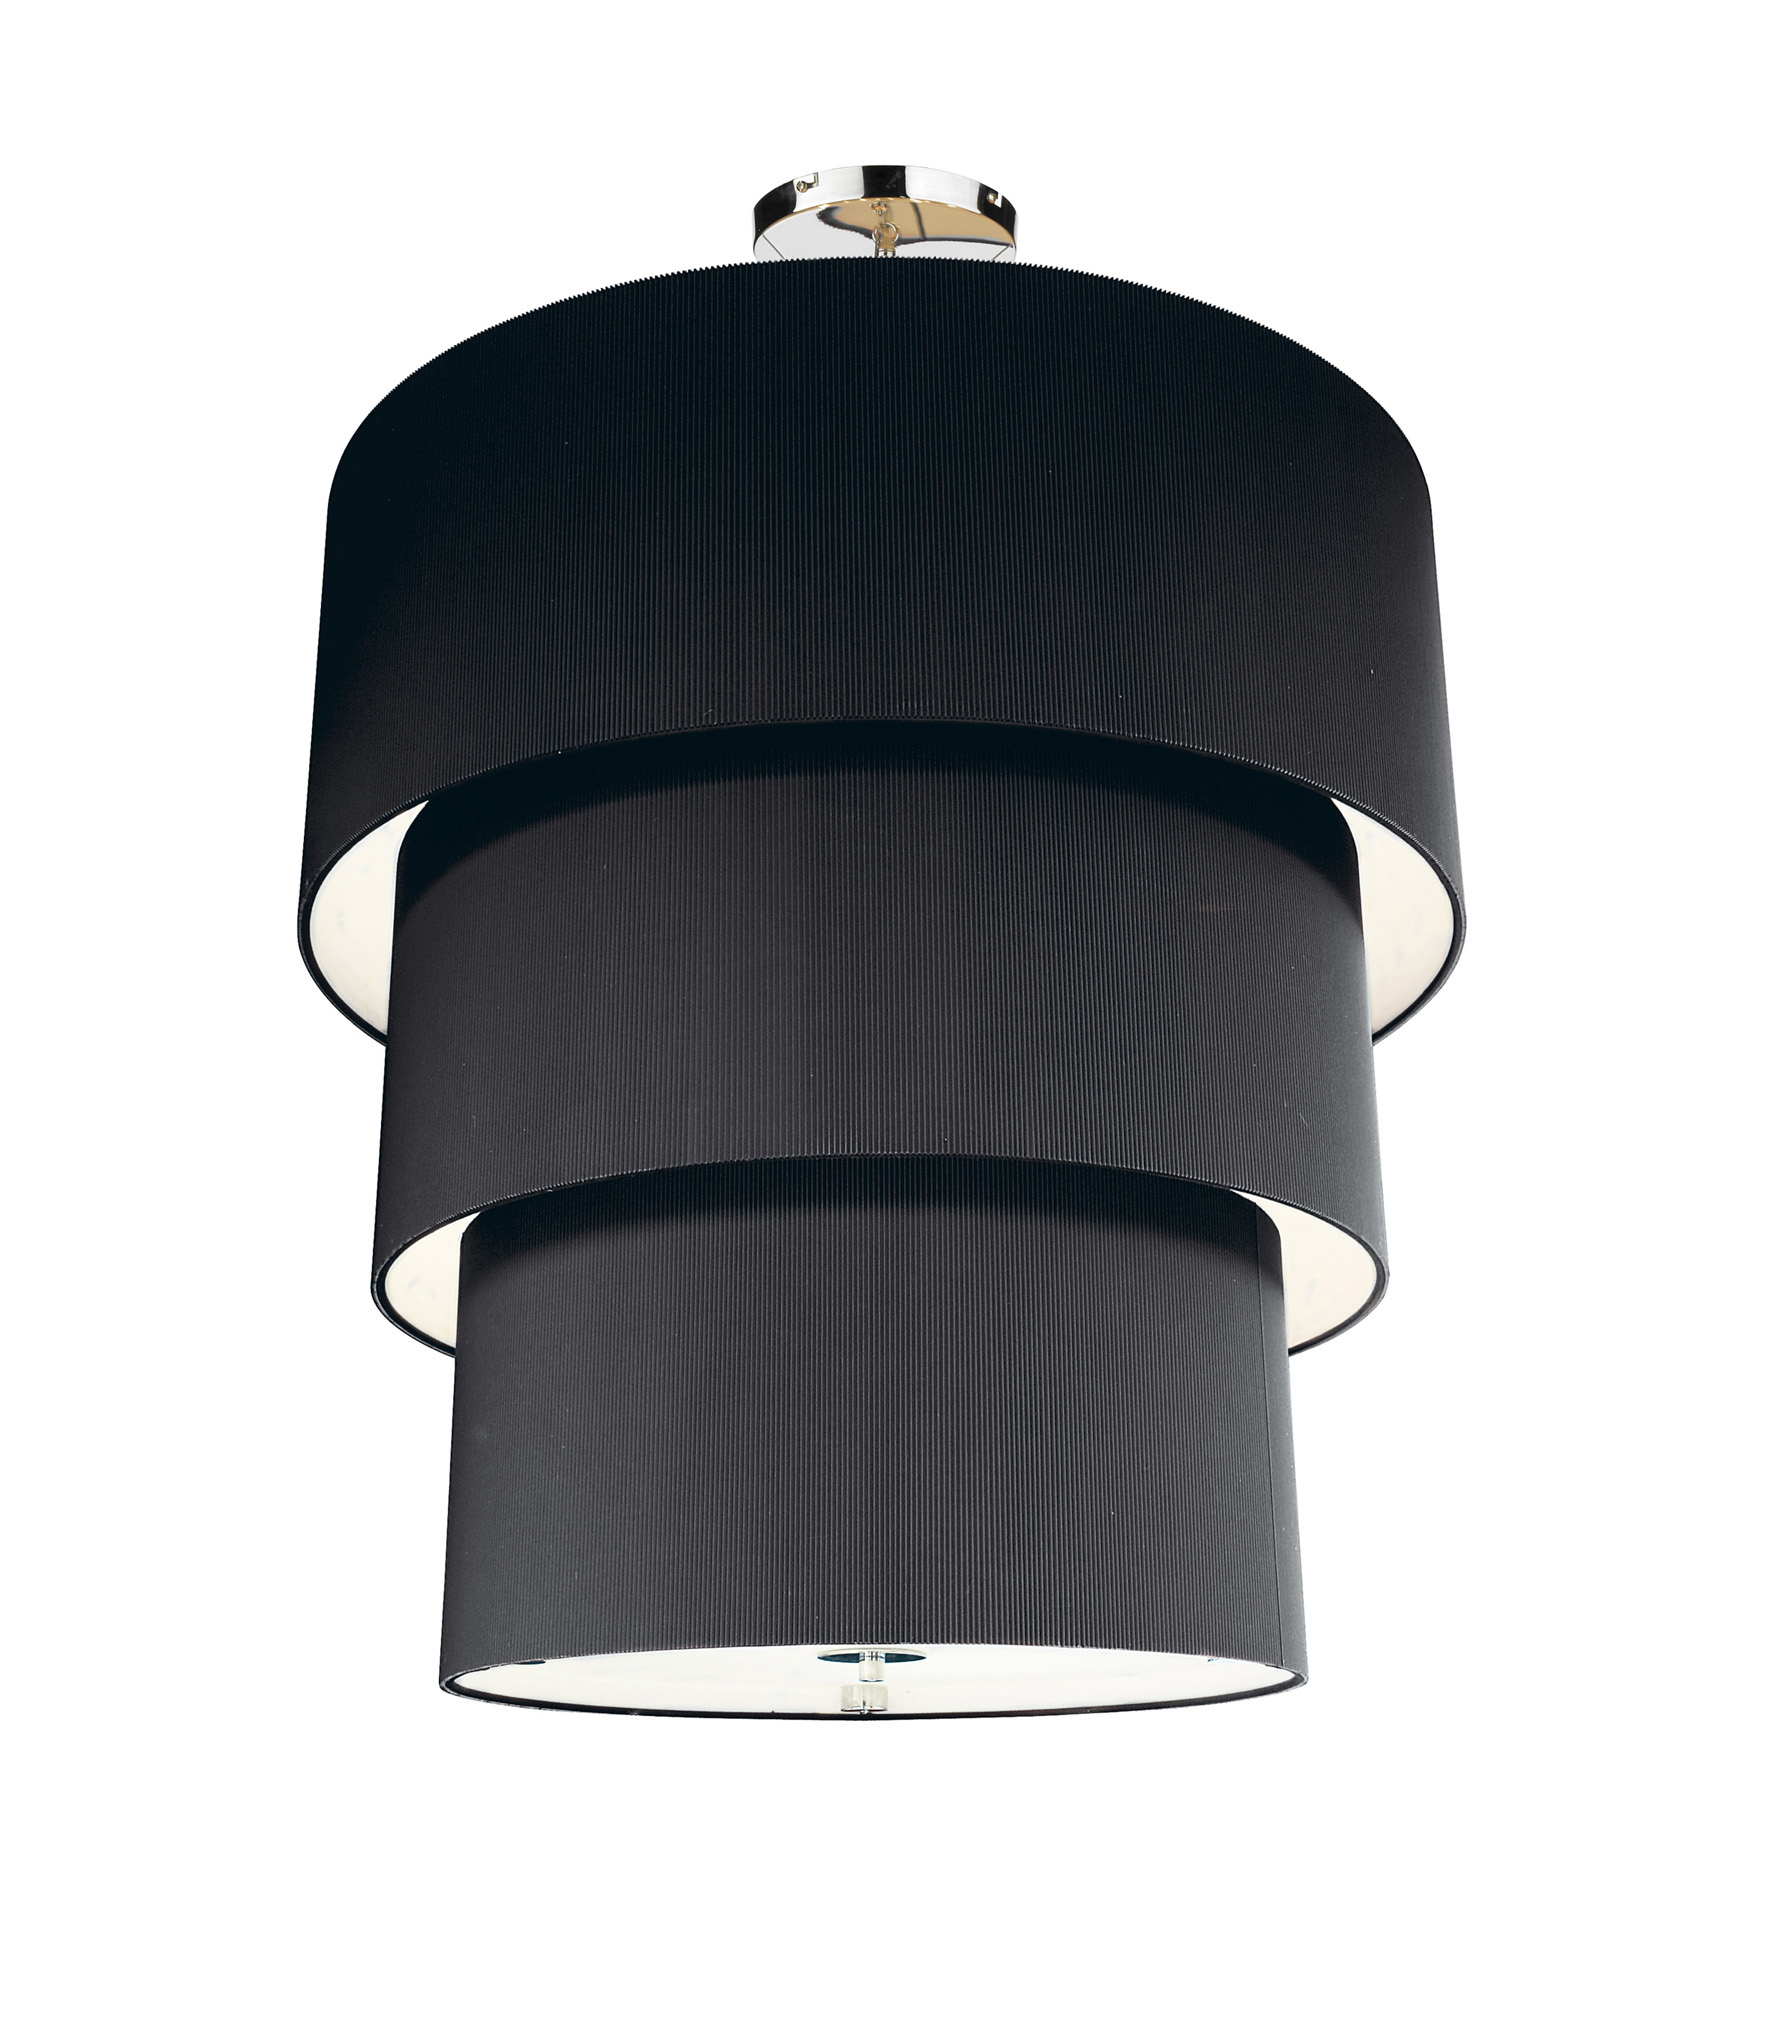 black lamp shades imperial lighting. Black Bedroom Furniture Sets. Home Design Ideas